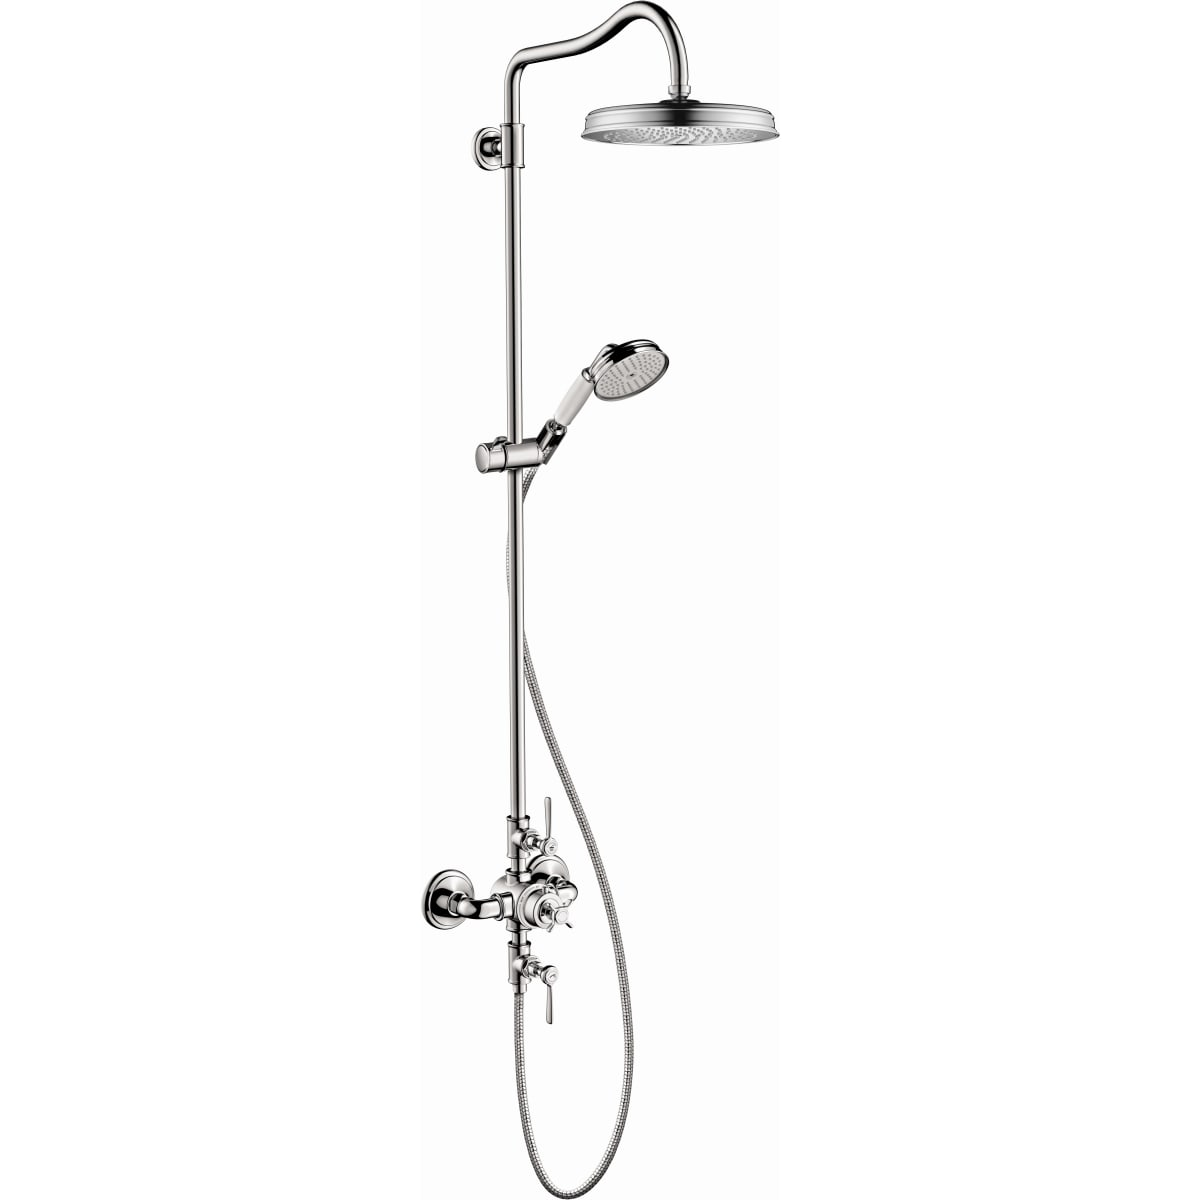 Picture of: Axor 16574001 Chrome Montreux Thermostatic Exposed Shower System Includes Shower Head Hand Shower Shower Arm Hose Valve Trim And Rough In Valve Limited Lifetime Warranty Faucet Com